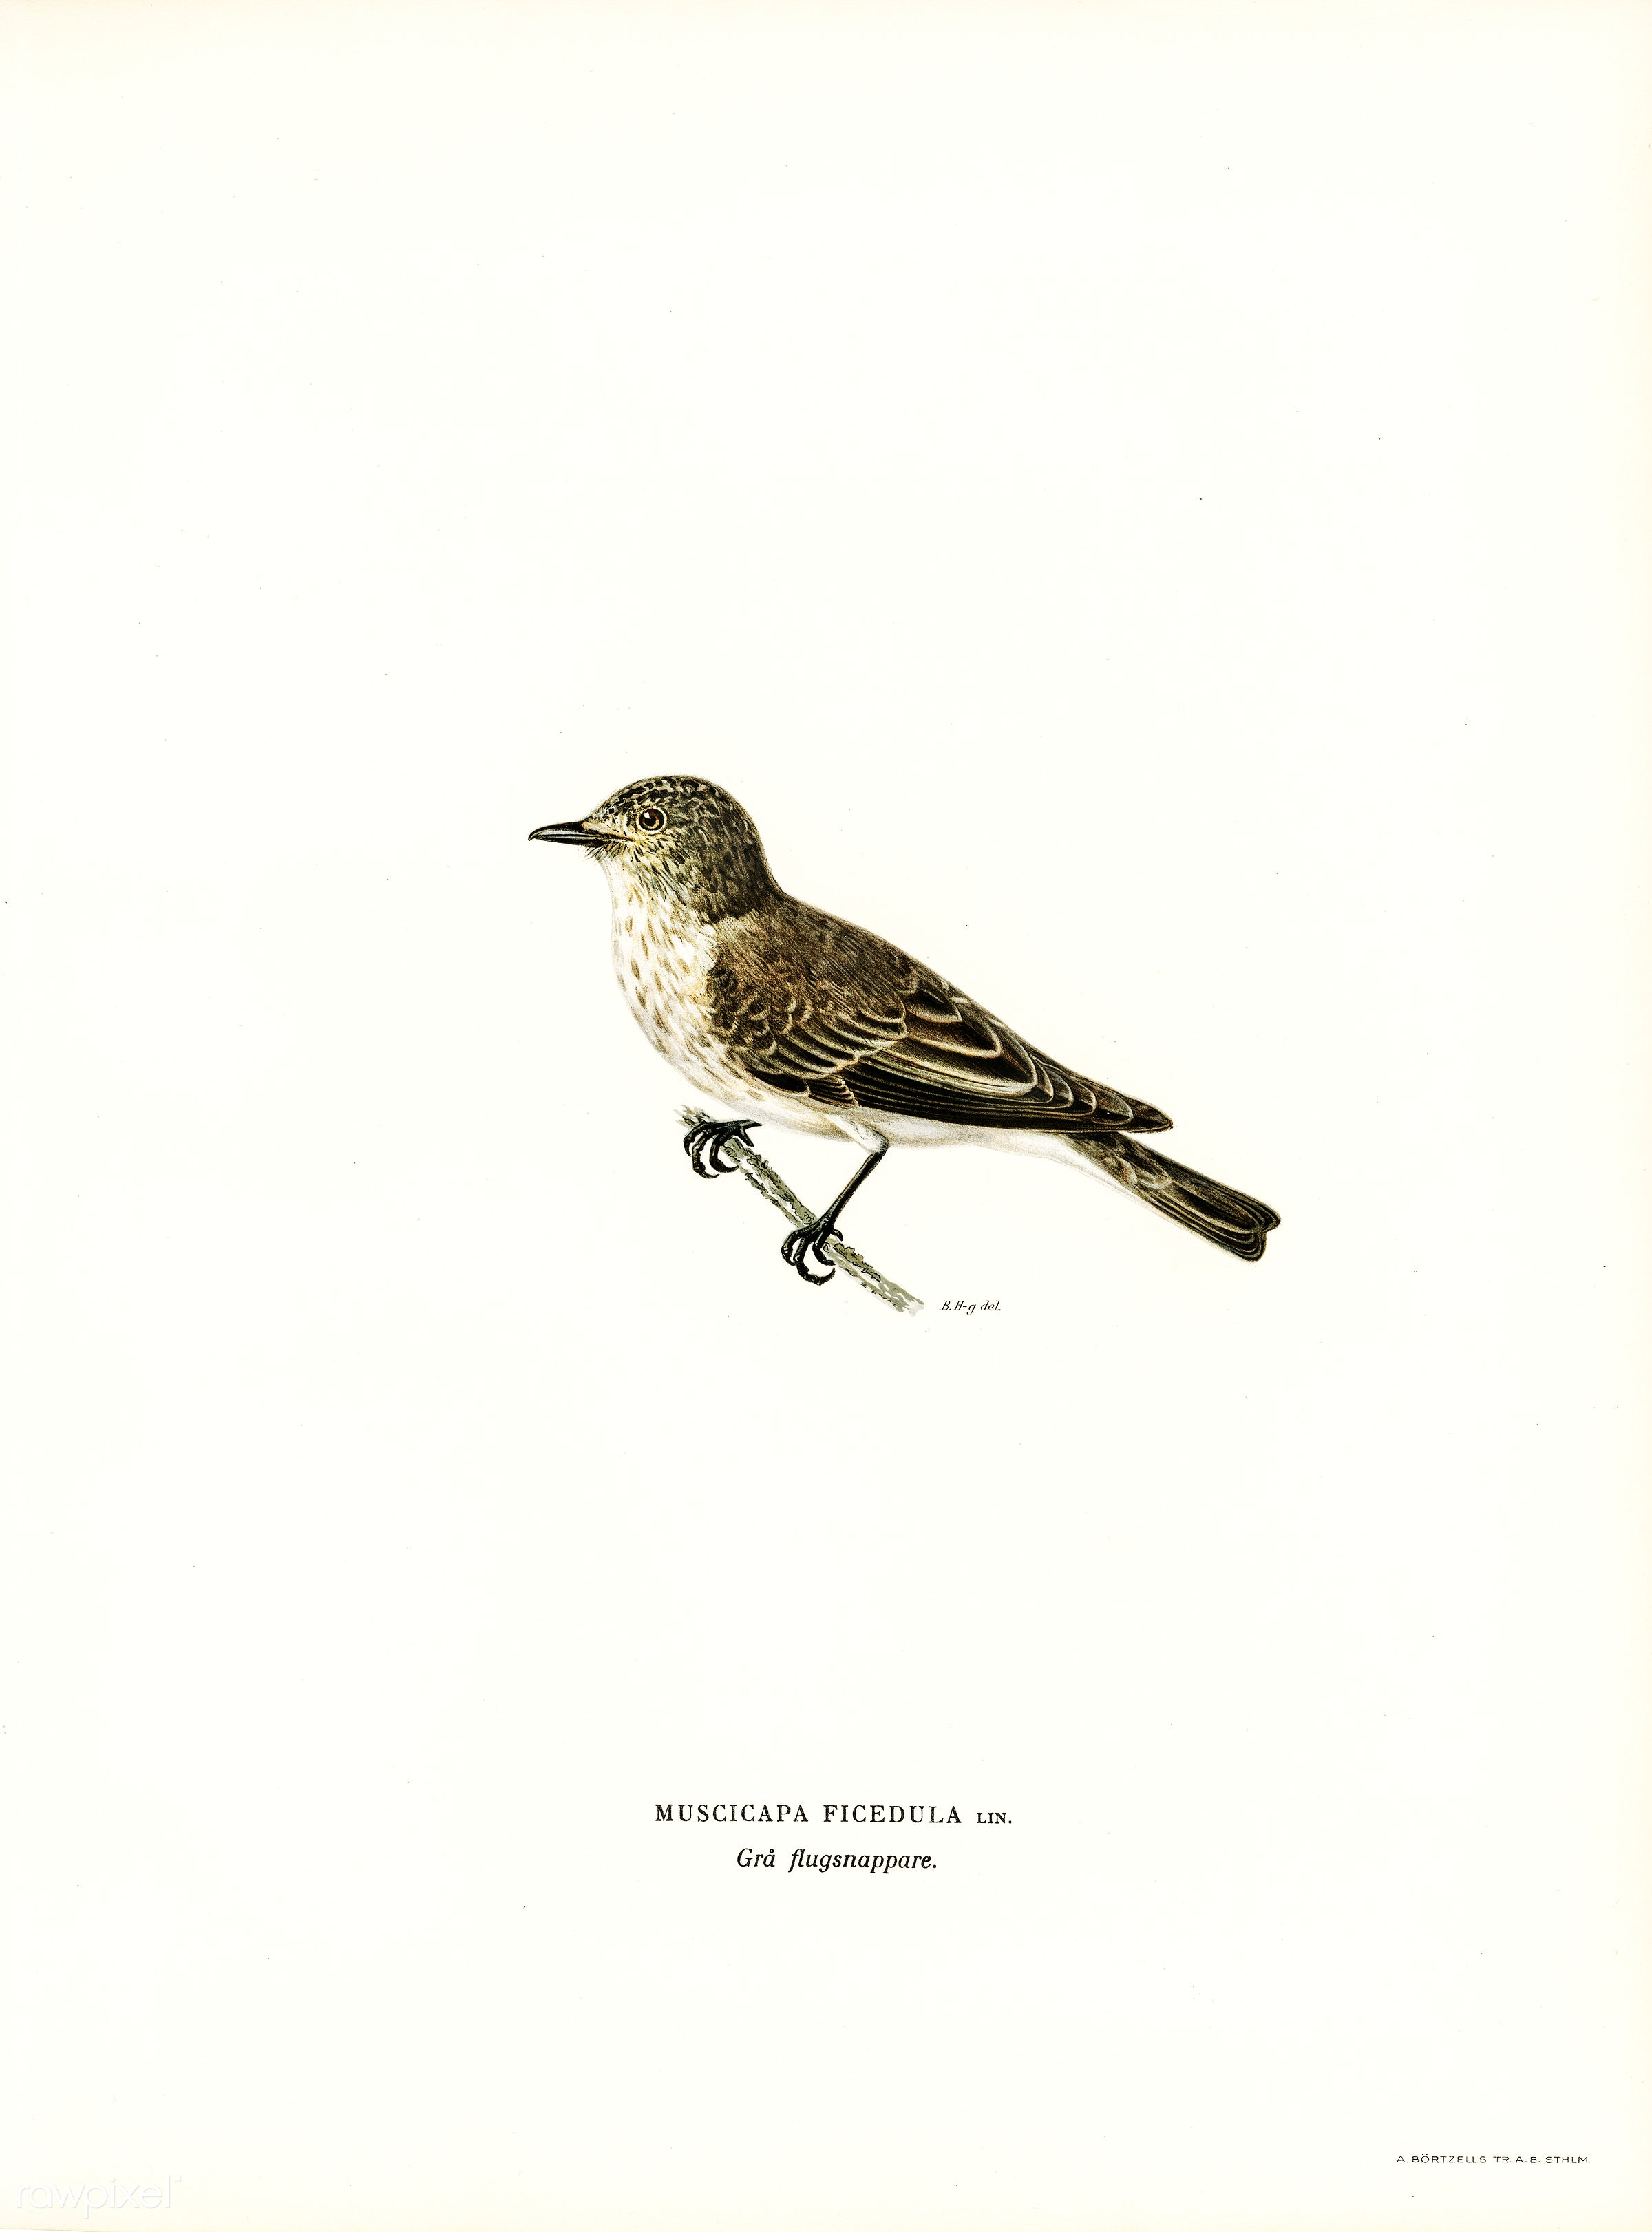 Spotted flycatcher (Muscicapa ficedula) illustrated by the von Wright brothers. Digitally enhanced from our own 1929 folio...